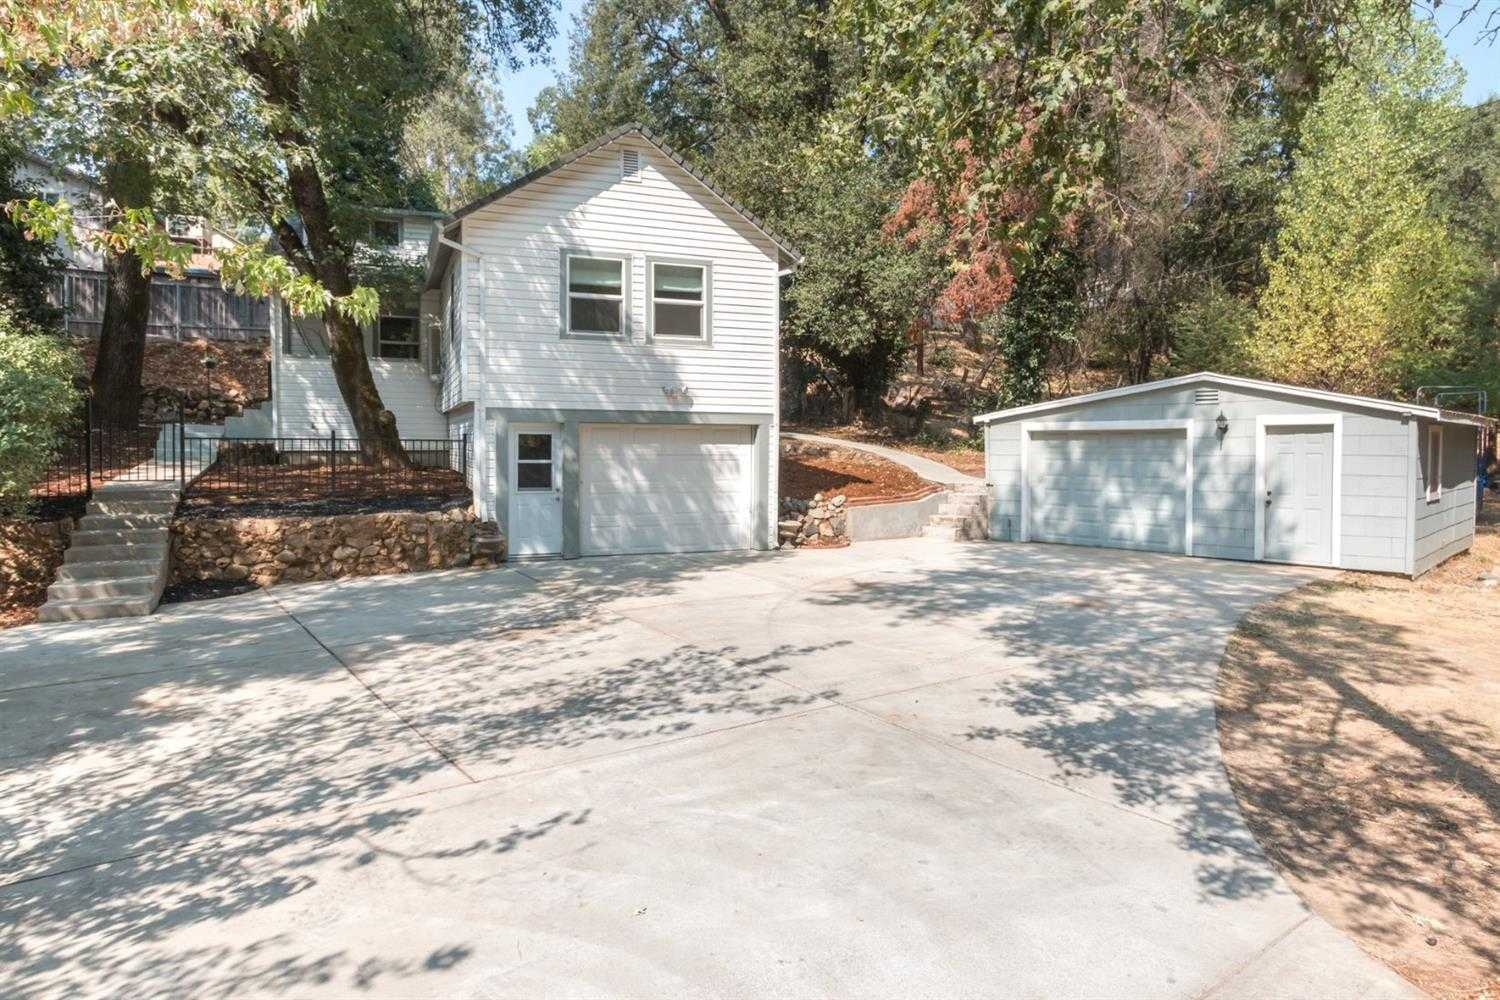 2800 Tunnel St Placerville, CA 95667